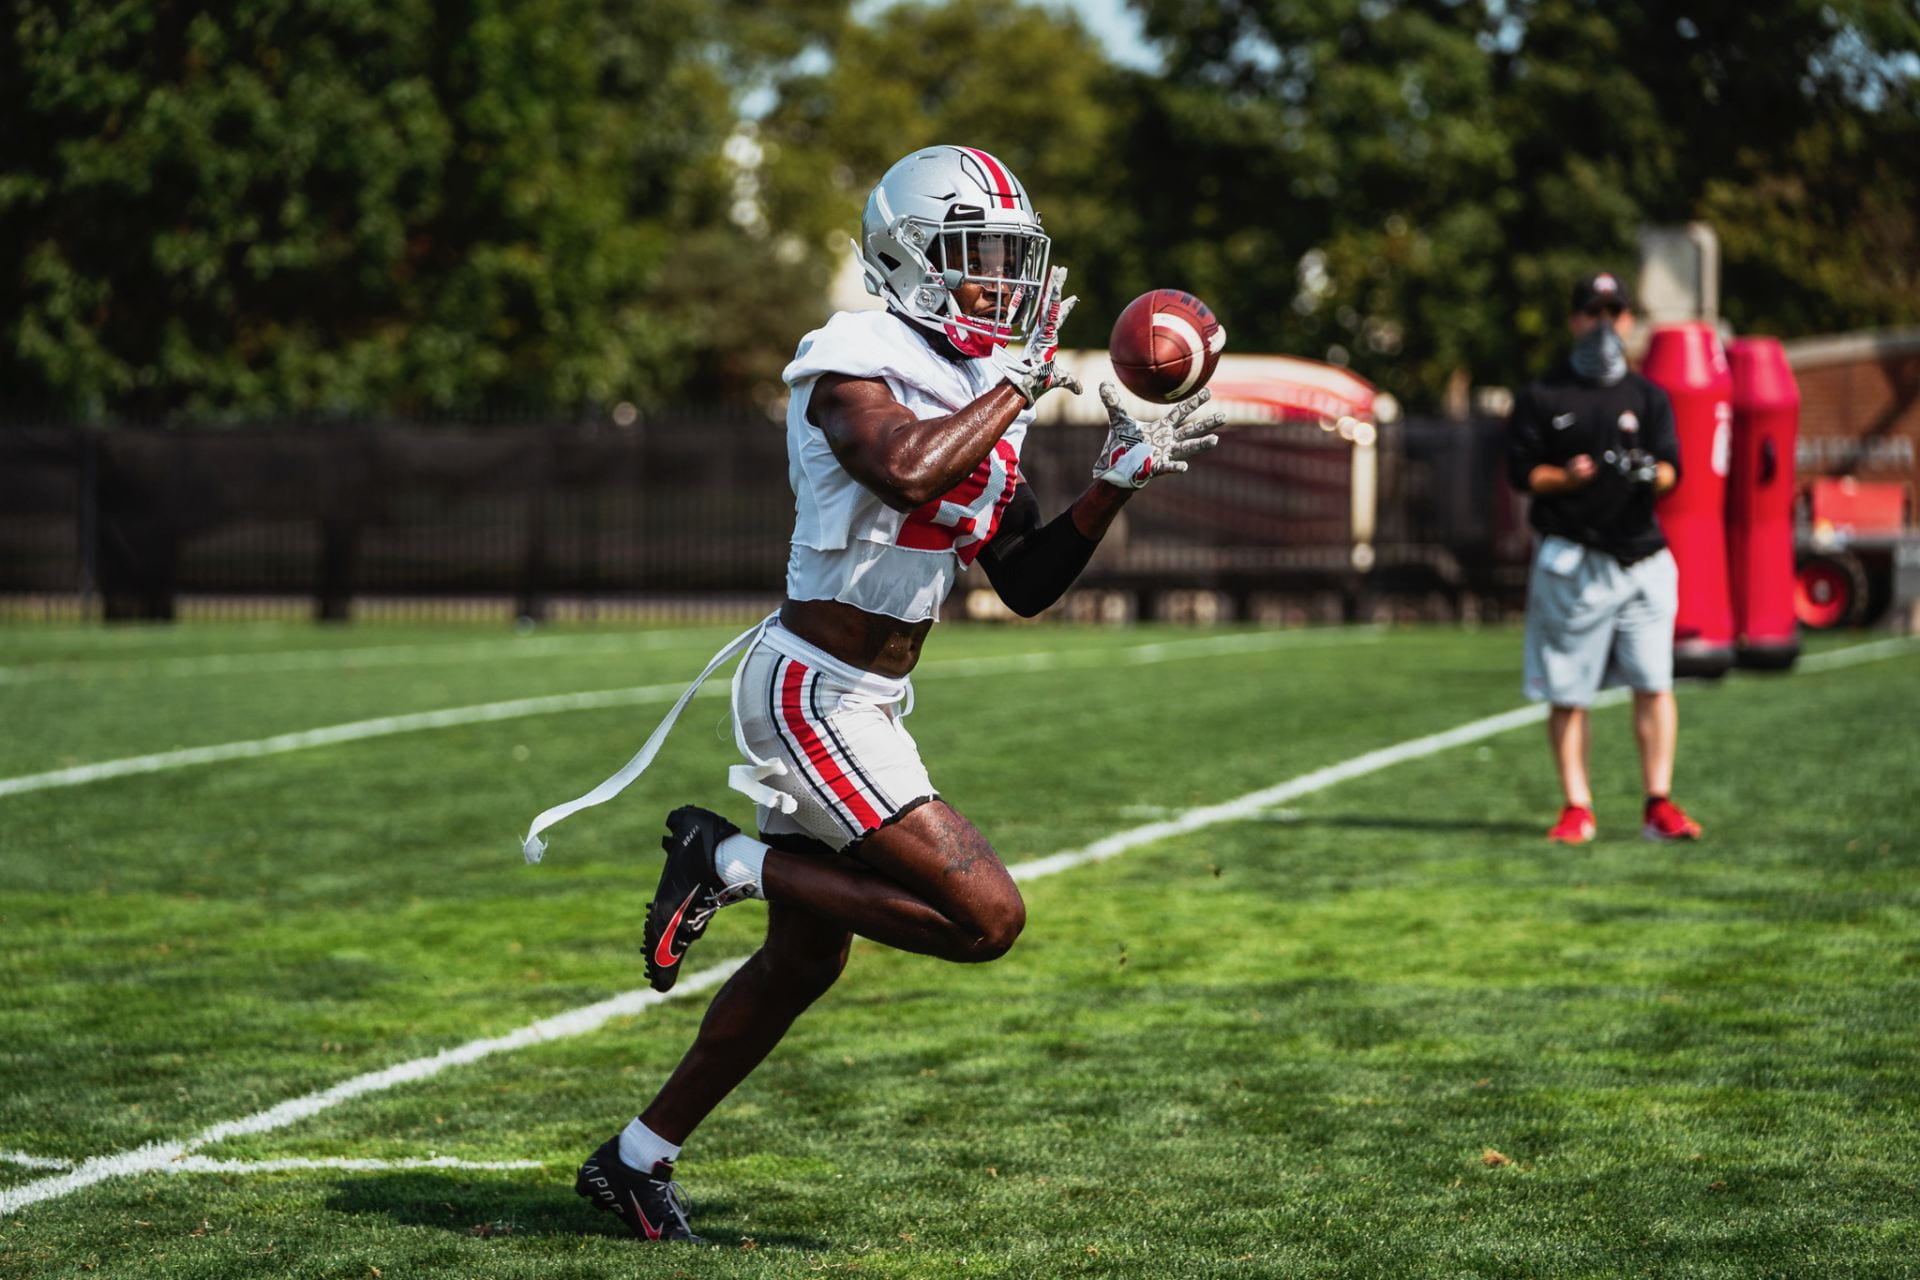 Marcus Williamson catching a pass in practice while running a drill.